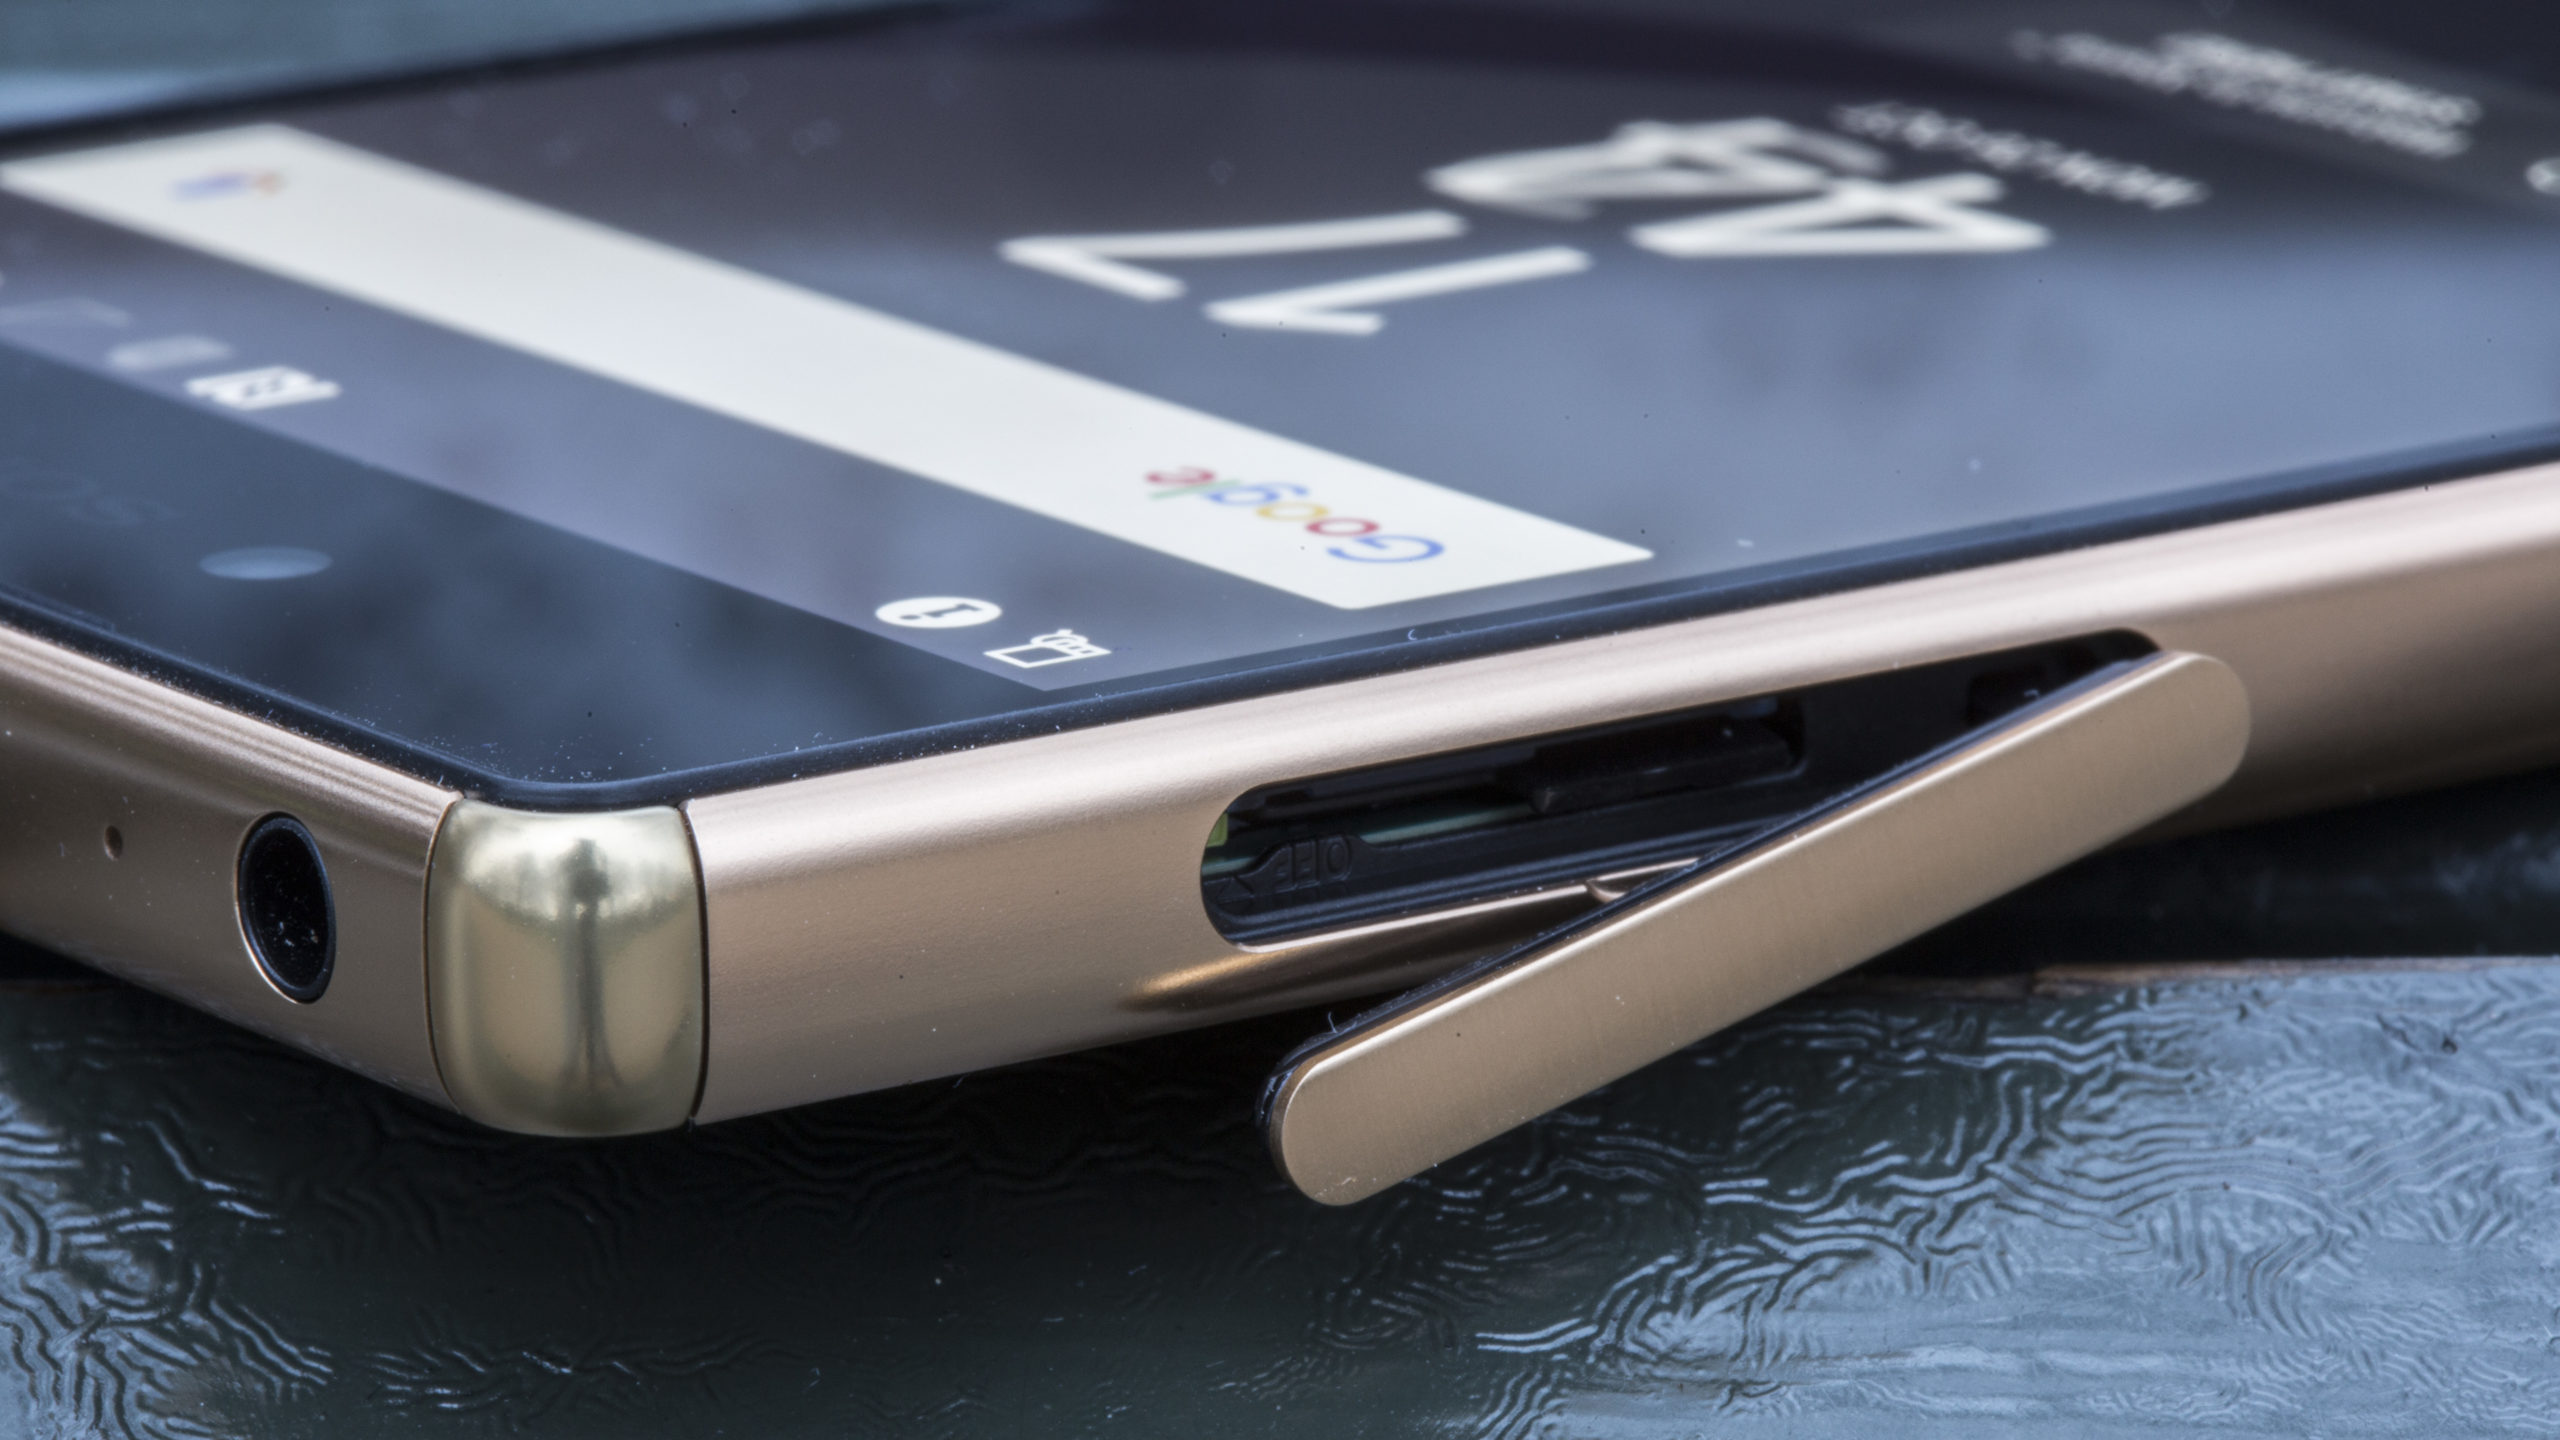 Sony Xperia Z5 Premium Review  Beautiful  Expensive  Pointless